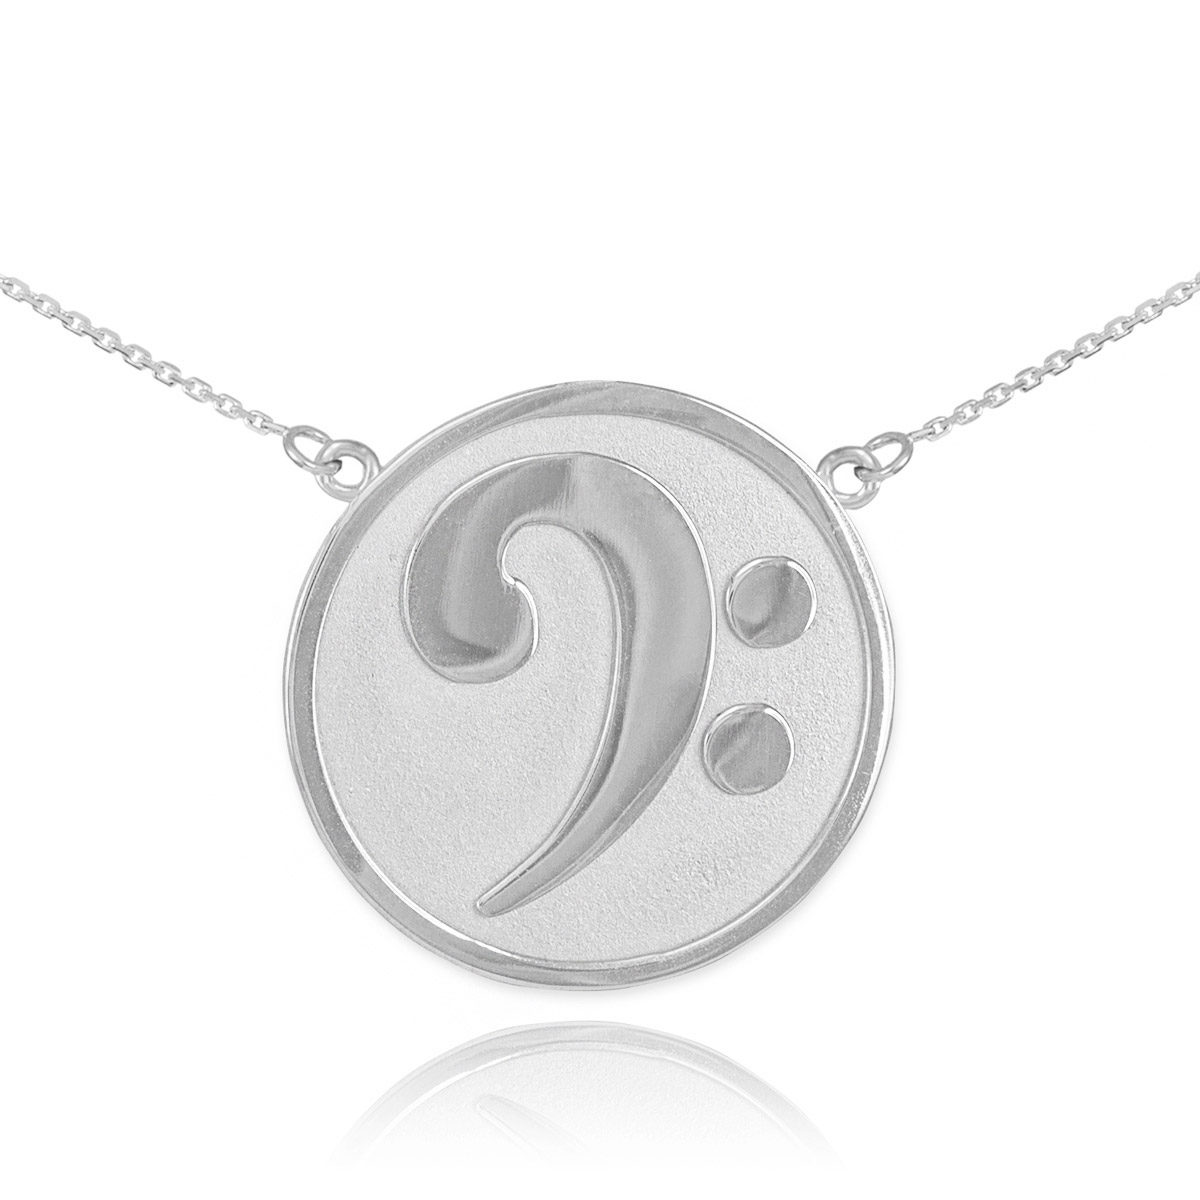 Textured bass clef pendant necklace in sterling silver gold boutique aloadofball Images